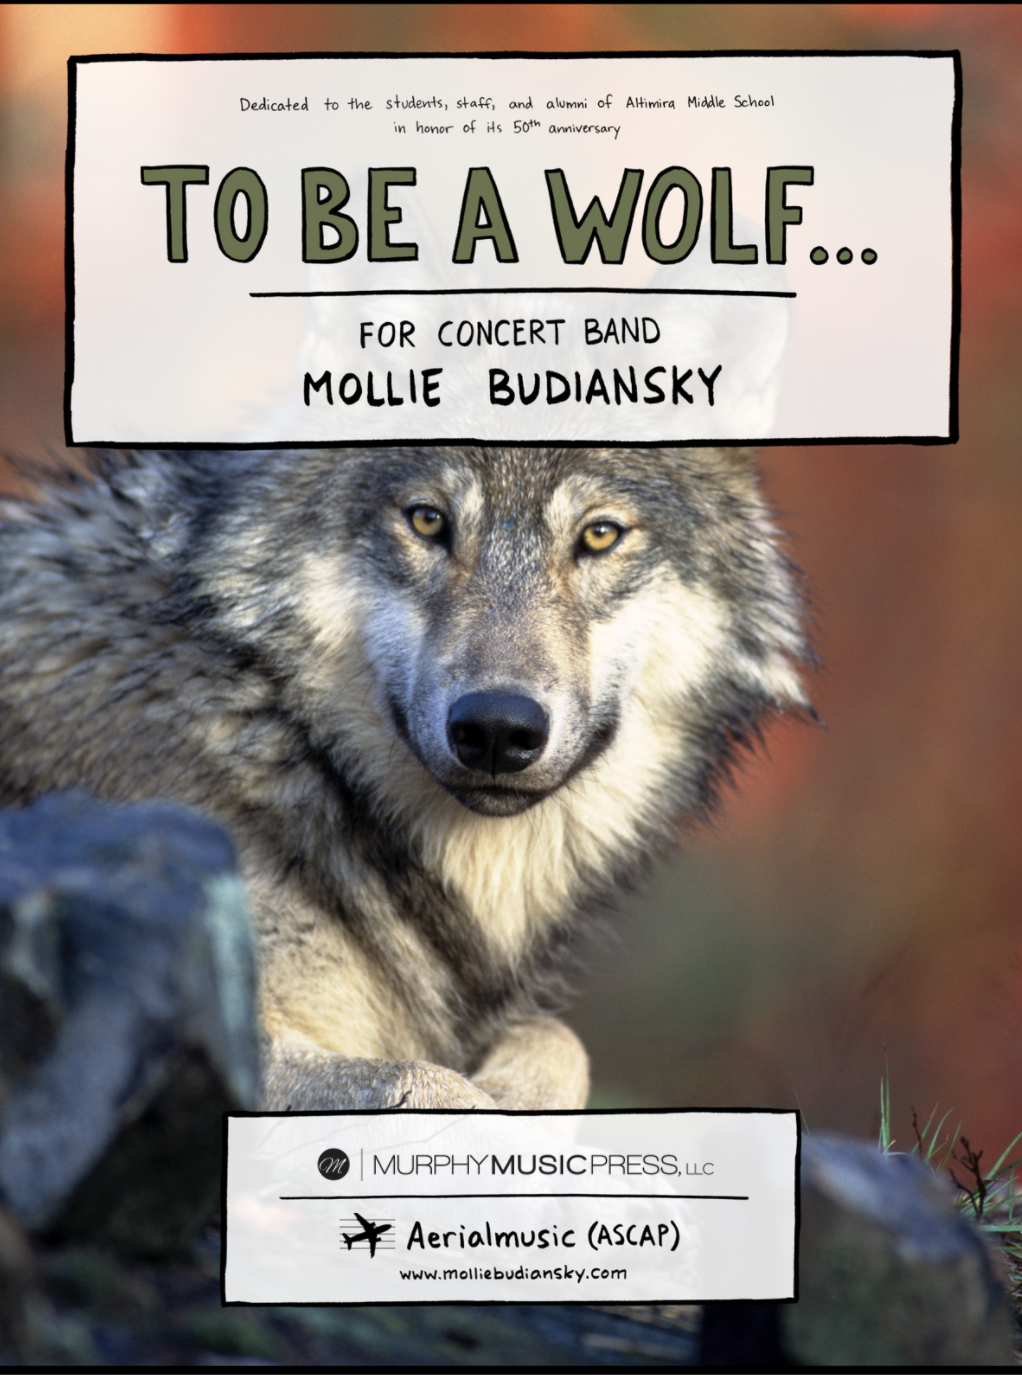 To Be A Wolf by Mollie Budiansky